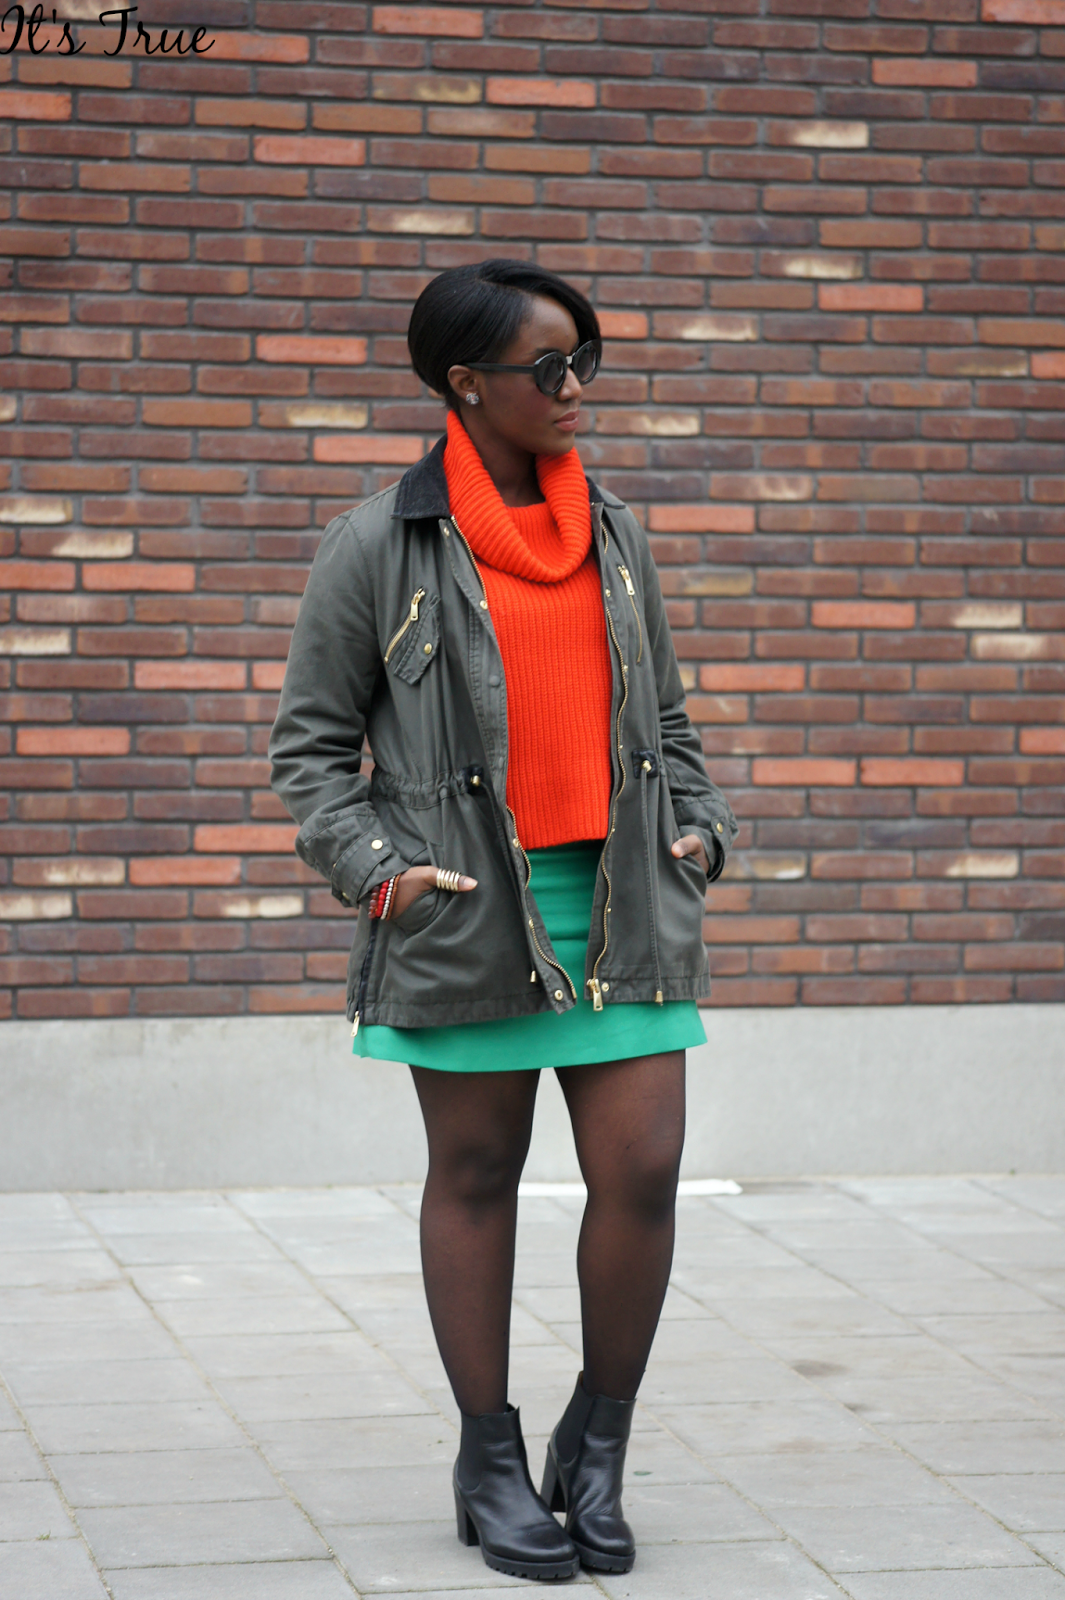 color block outfit in winter